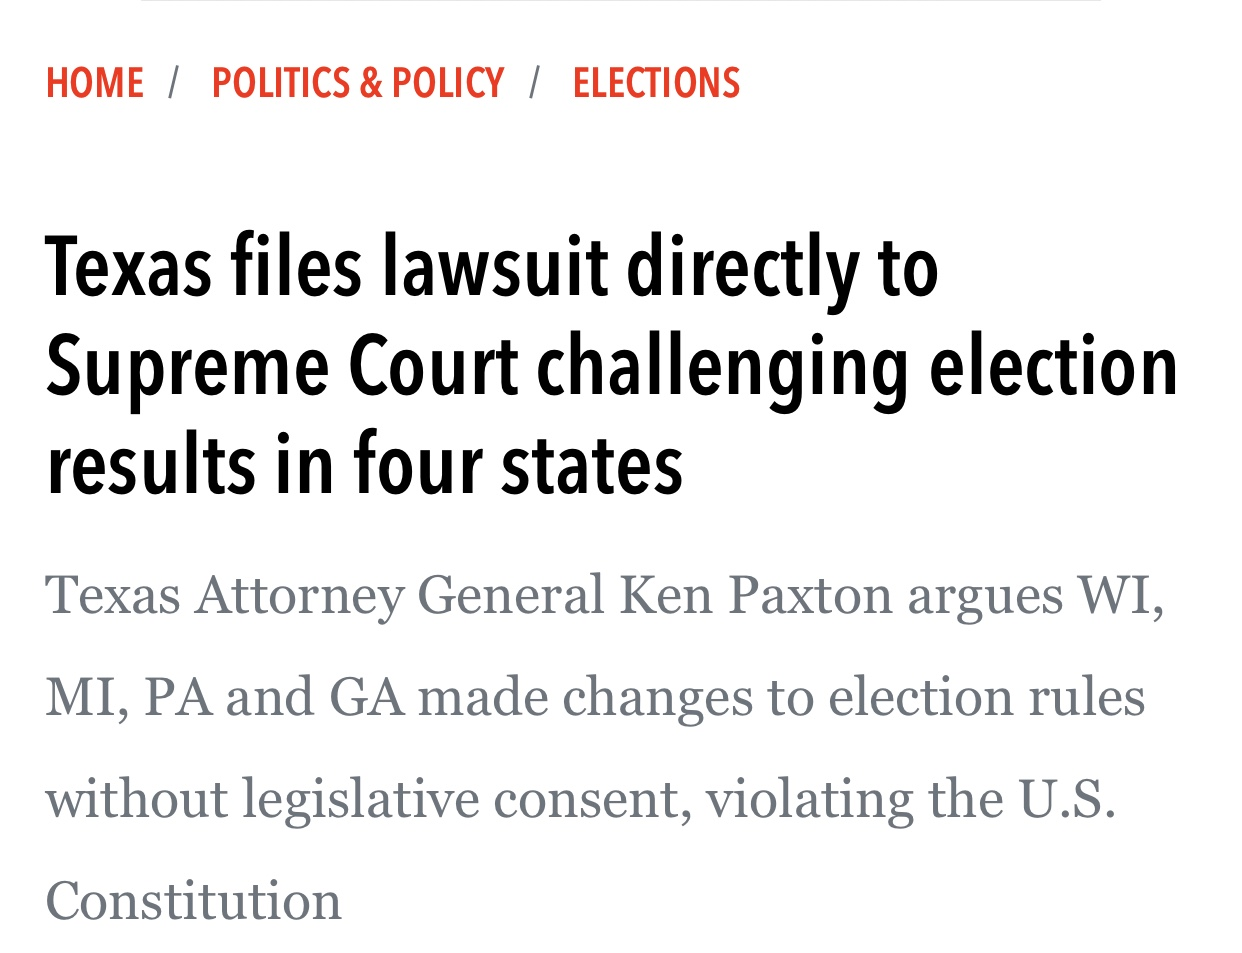 Texas files lawsuit directly to Supreme Court challenging election results in four states